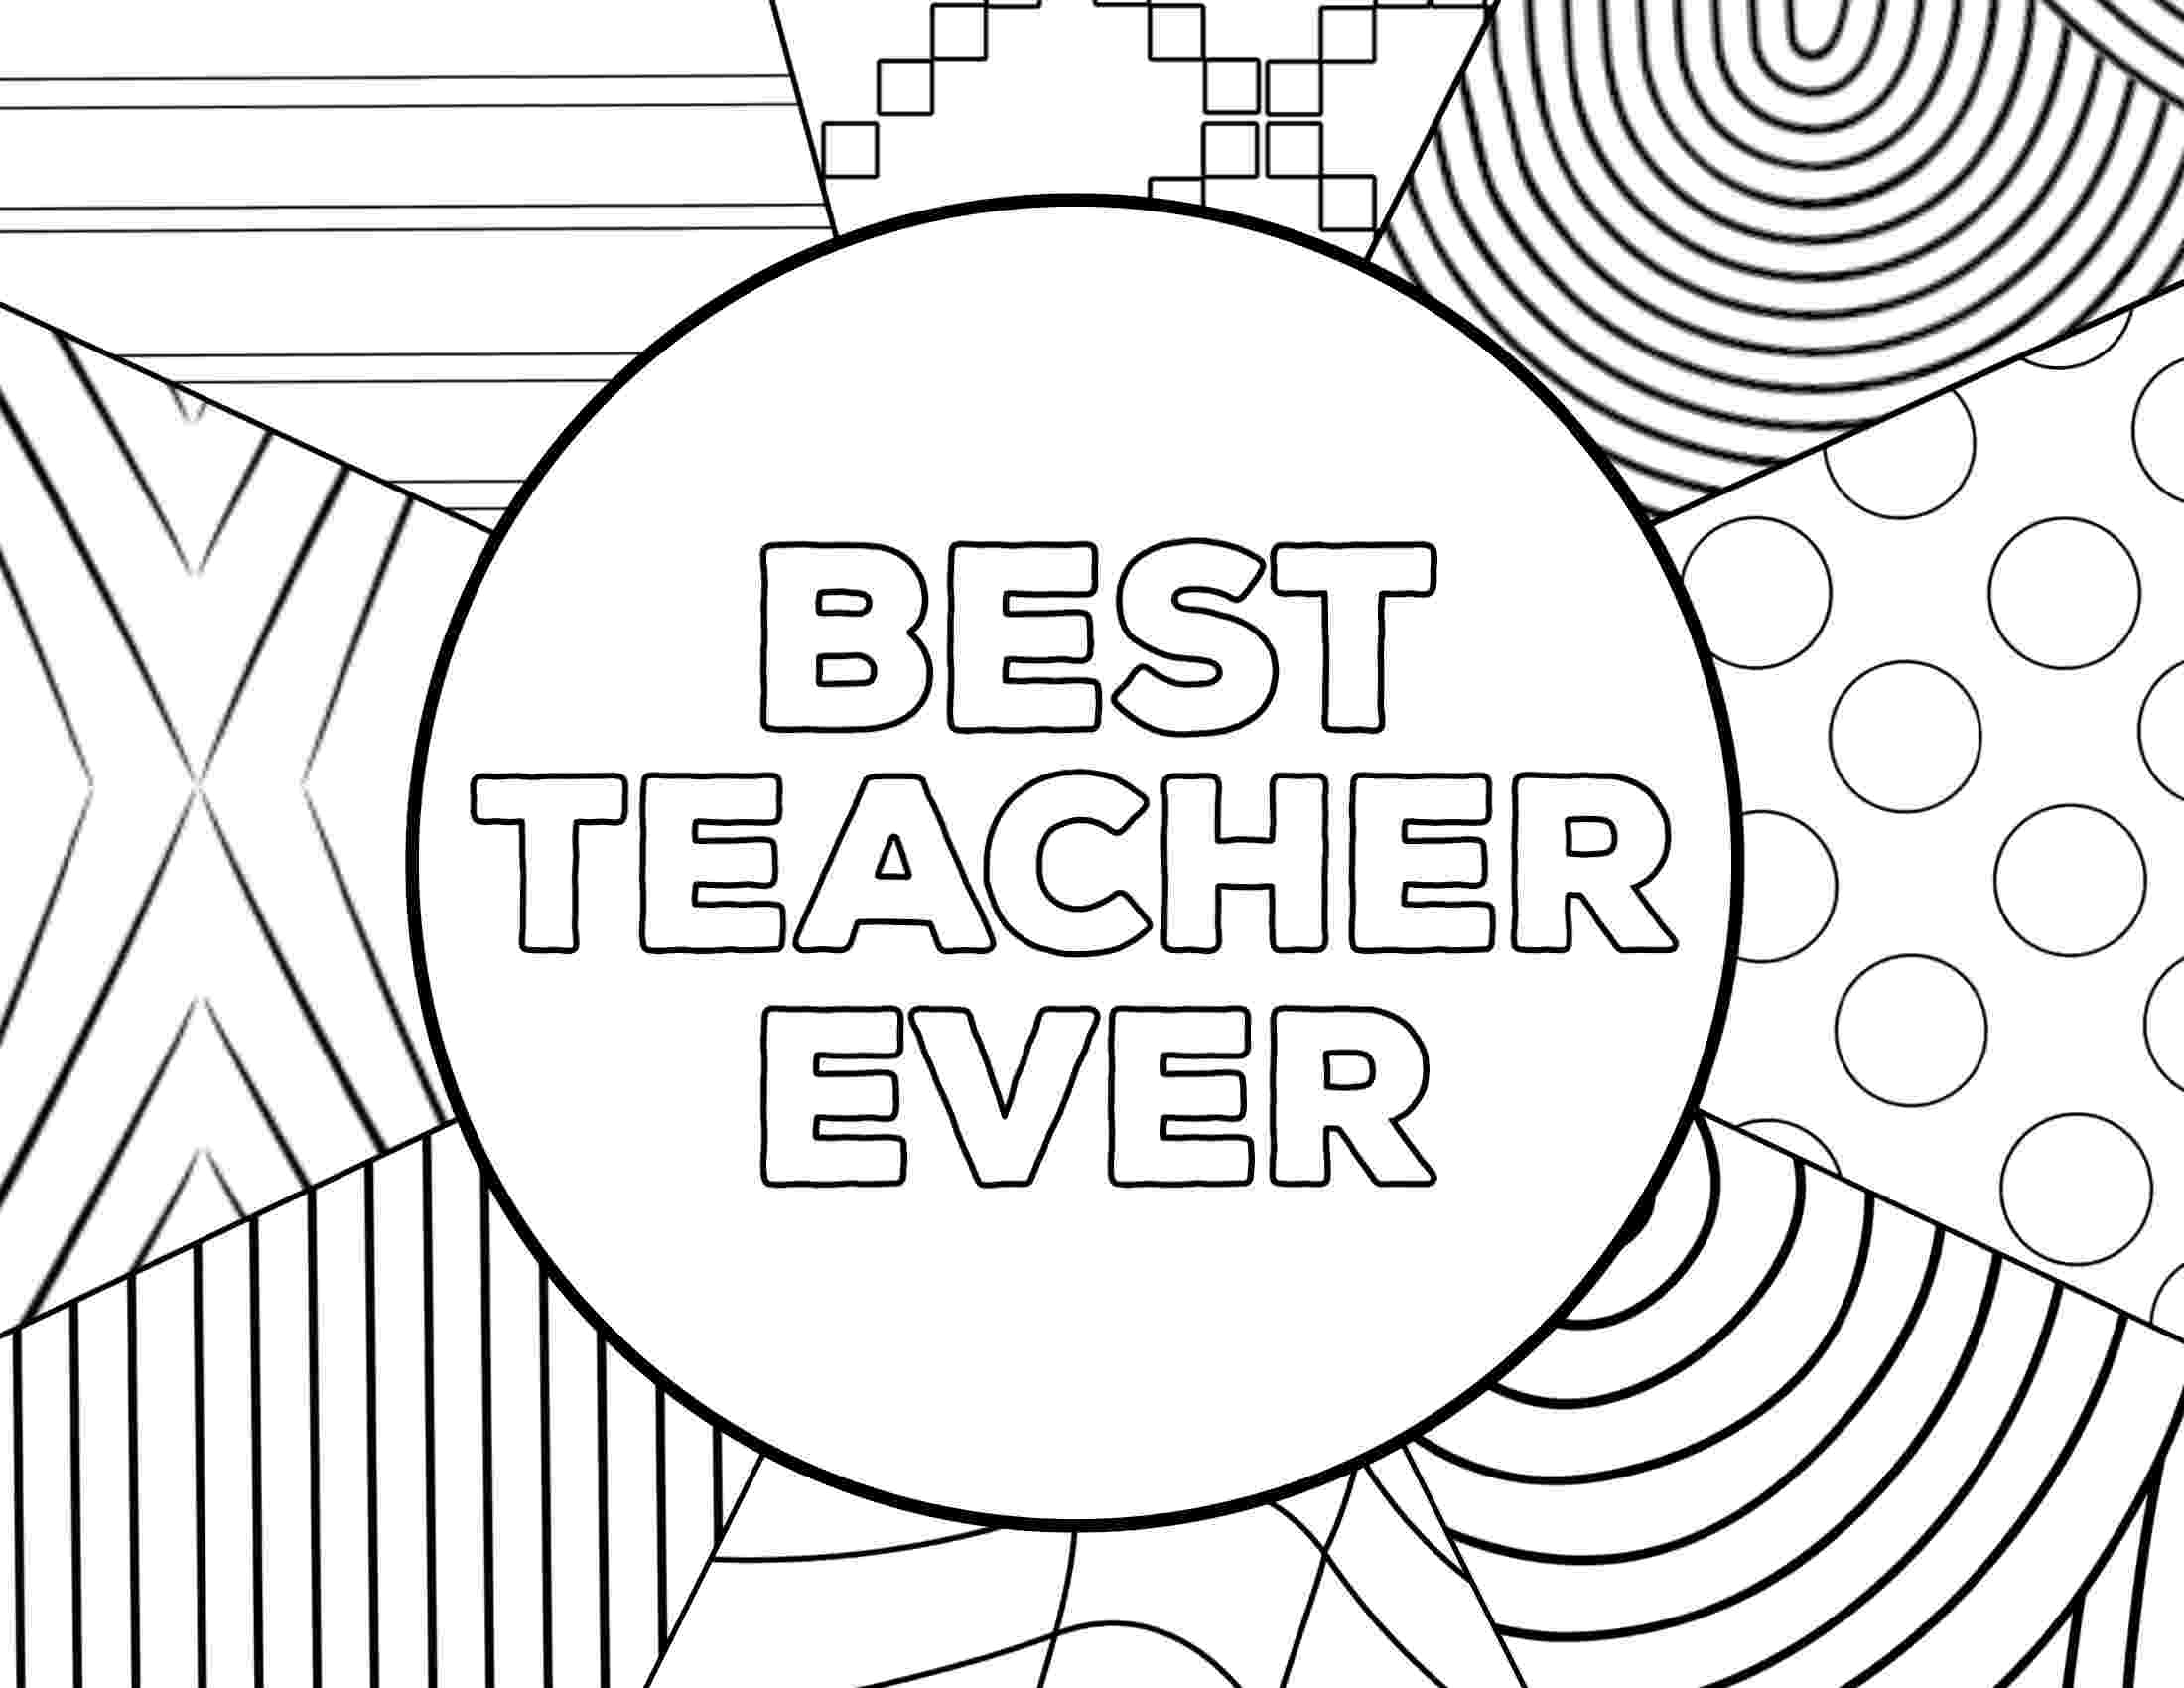 best teacher ever coloring pages world39s best teacher diploma coloring page free best ever teacher pages coloring